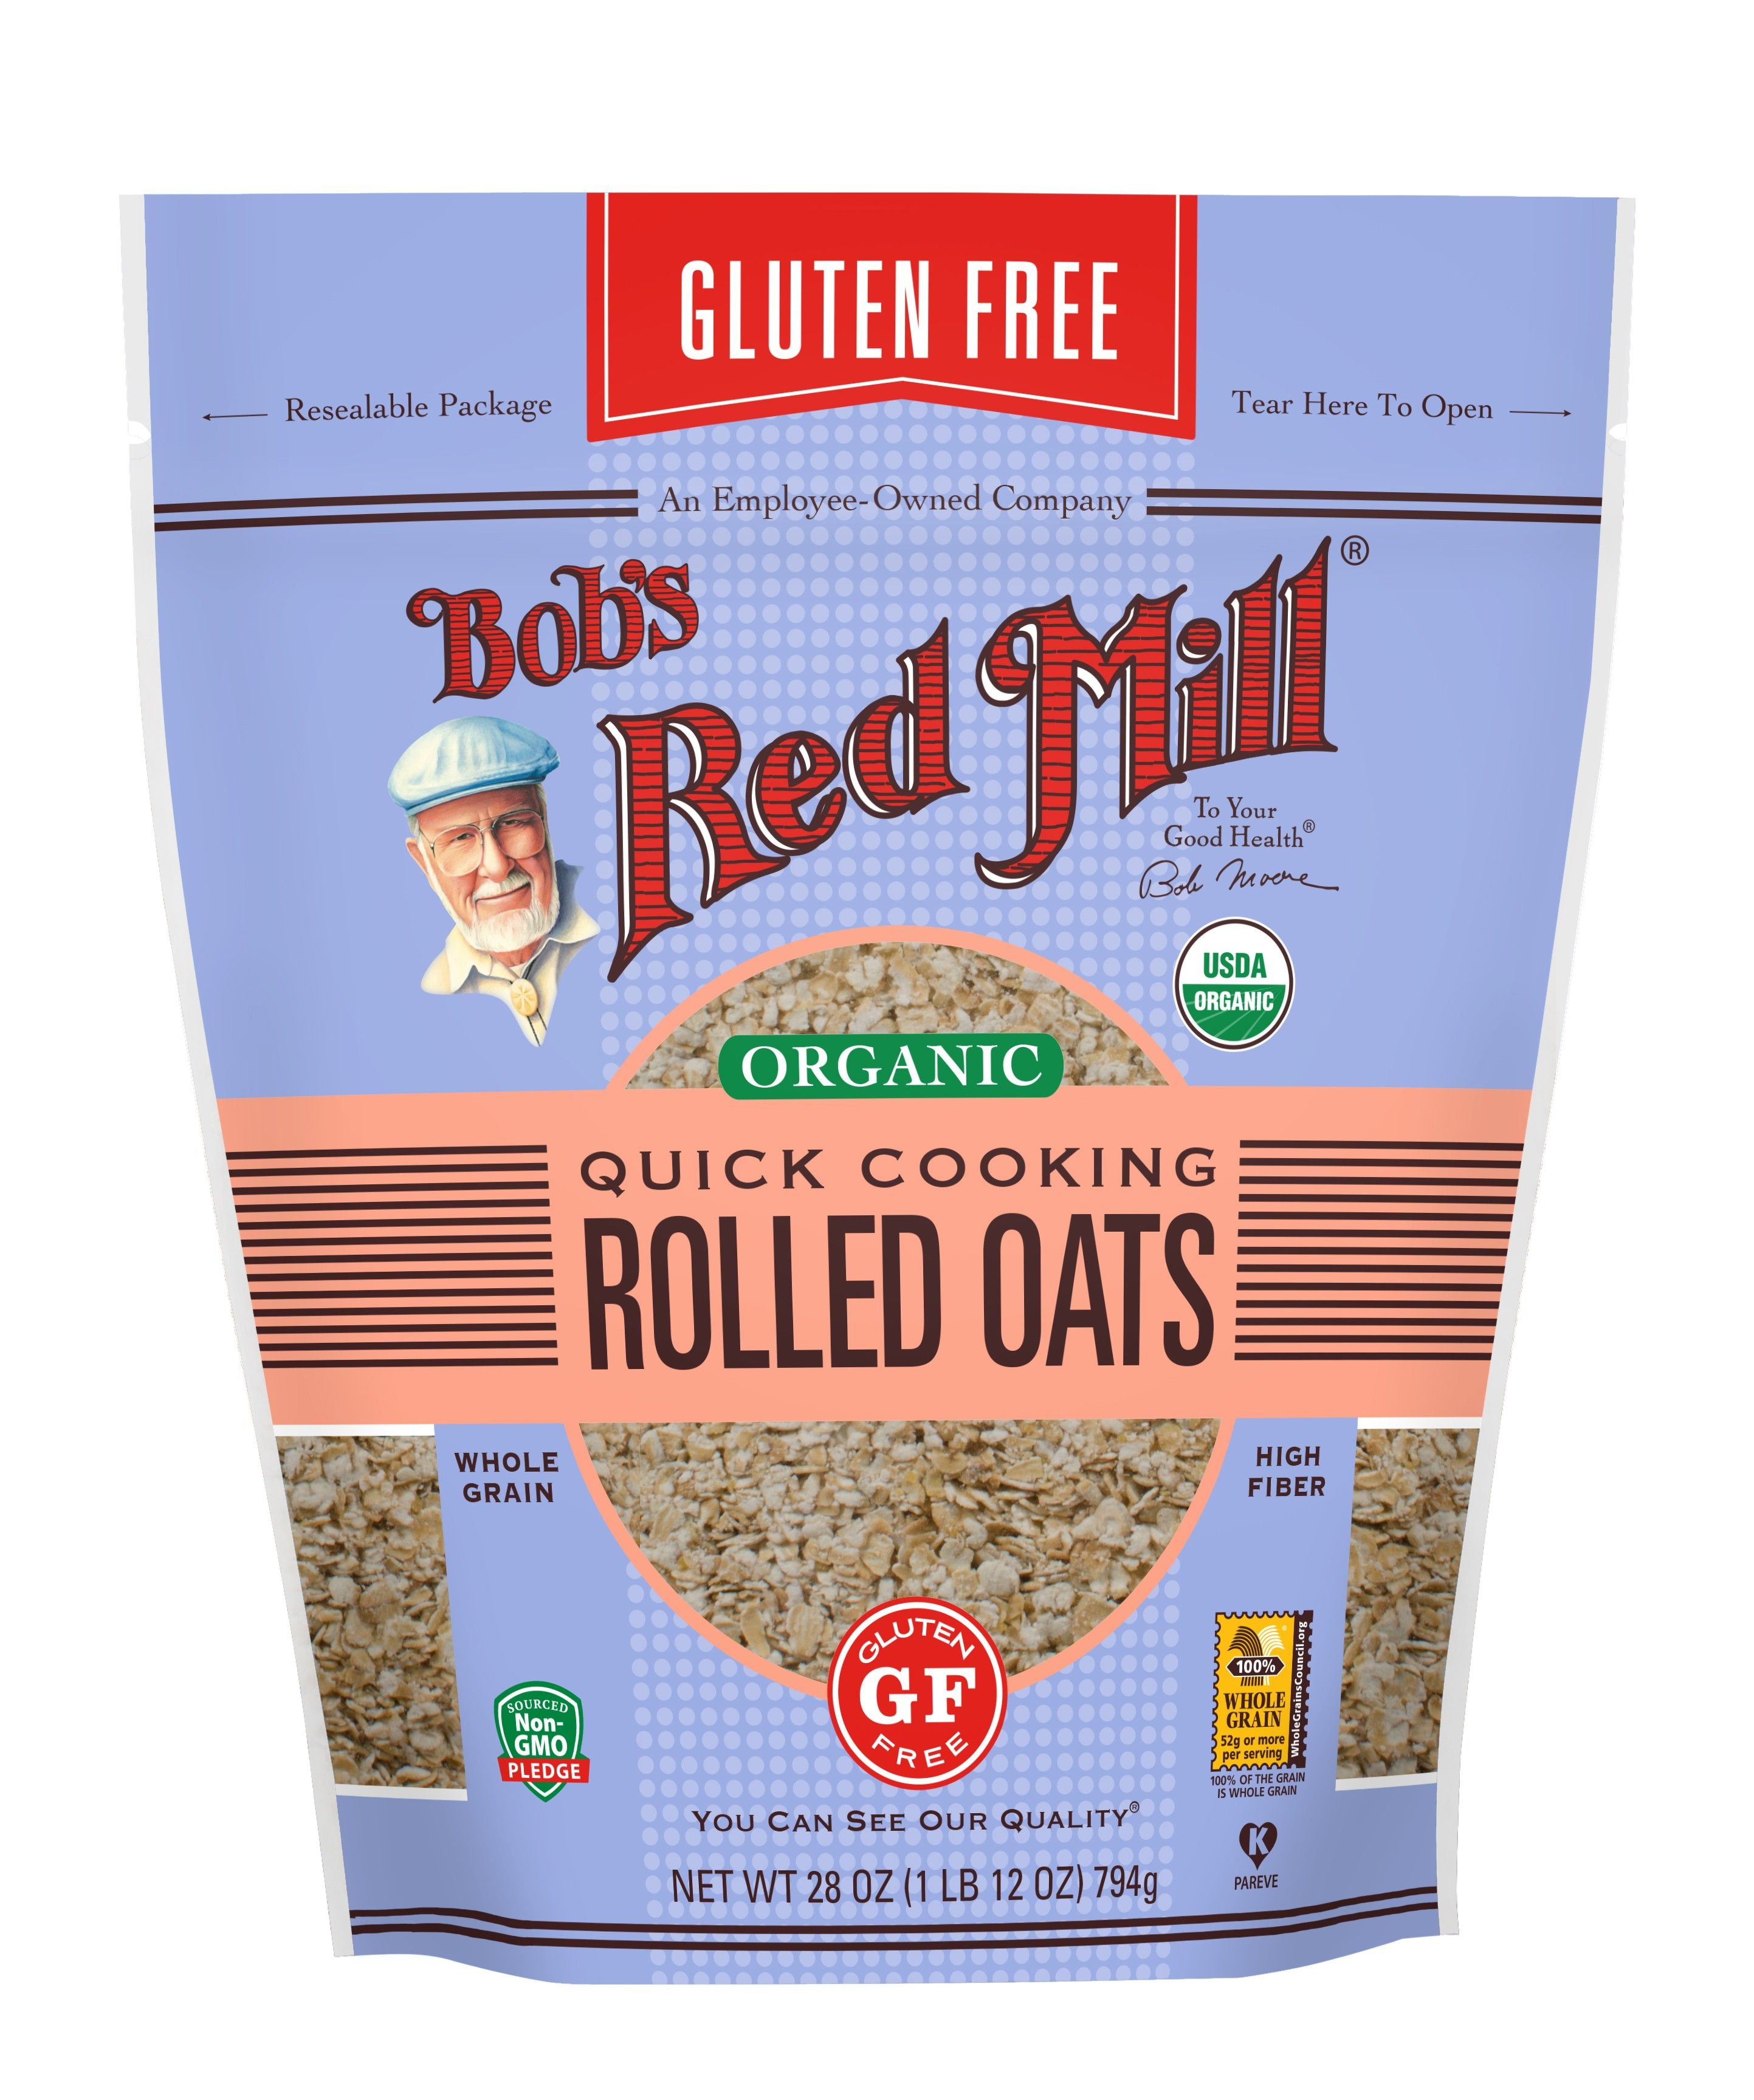 Gluten Free Organic Quick Cooking Rolled Oats Cooking Rolled Oats Bobs Red Mill Gluten Free Oats